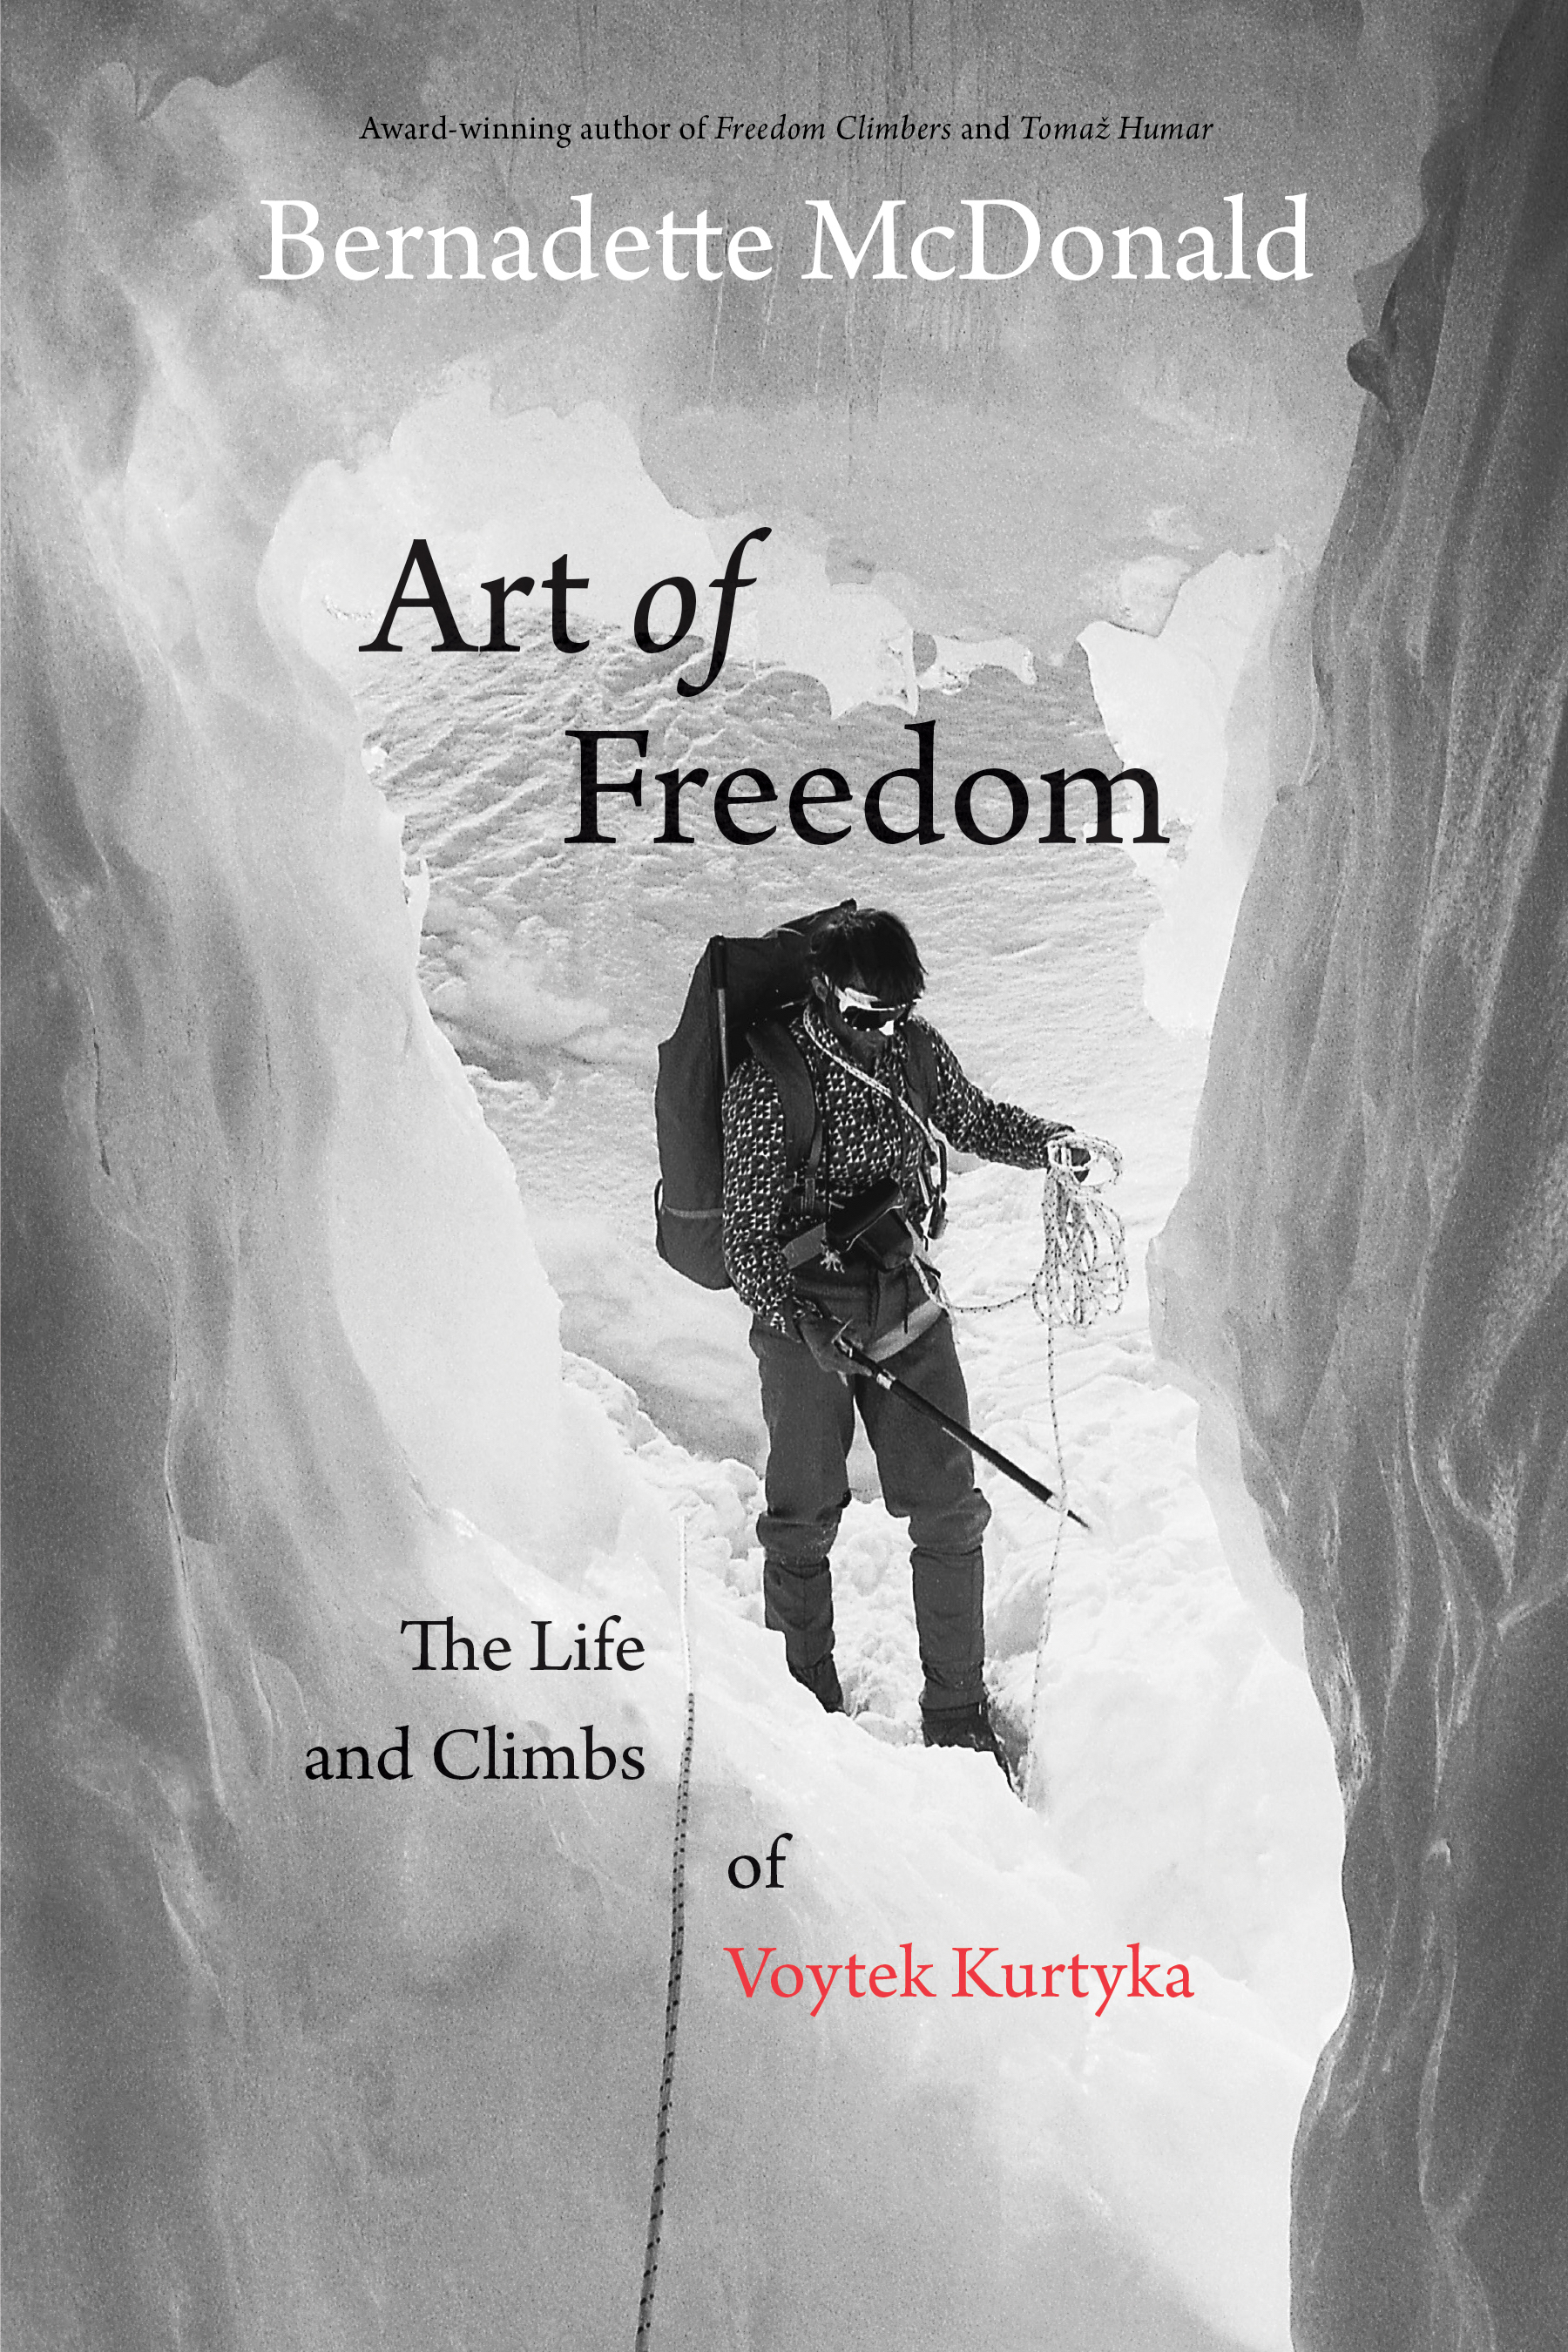 Art of Freedom: The Life and Climbs of Voytek Kurtyka by Bernadette McDonald. Rocky Mountain Books, 2017. 326 pages. Hardcover, $32. [Image] Courtesy Rocky Mountain Books